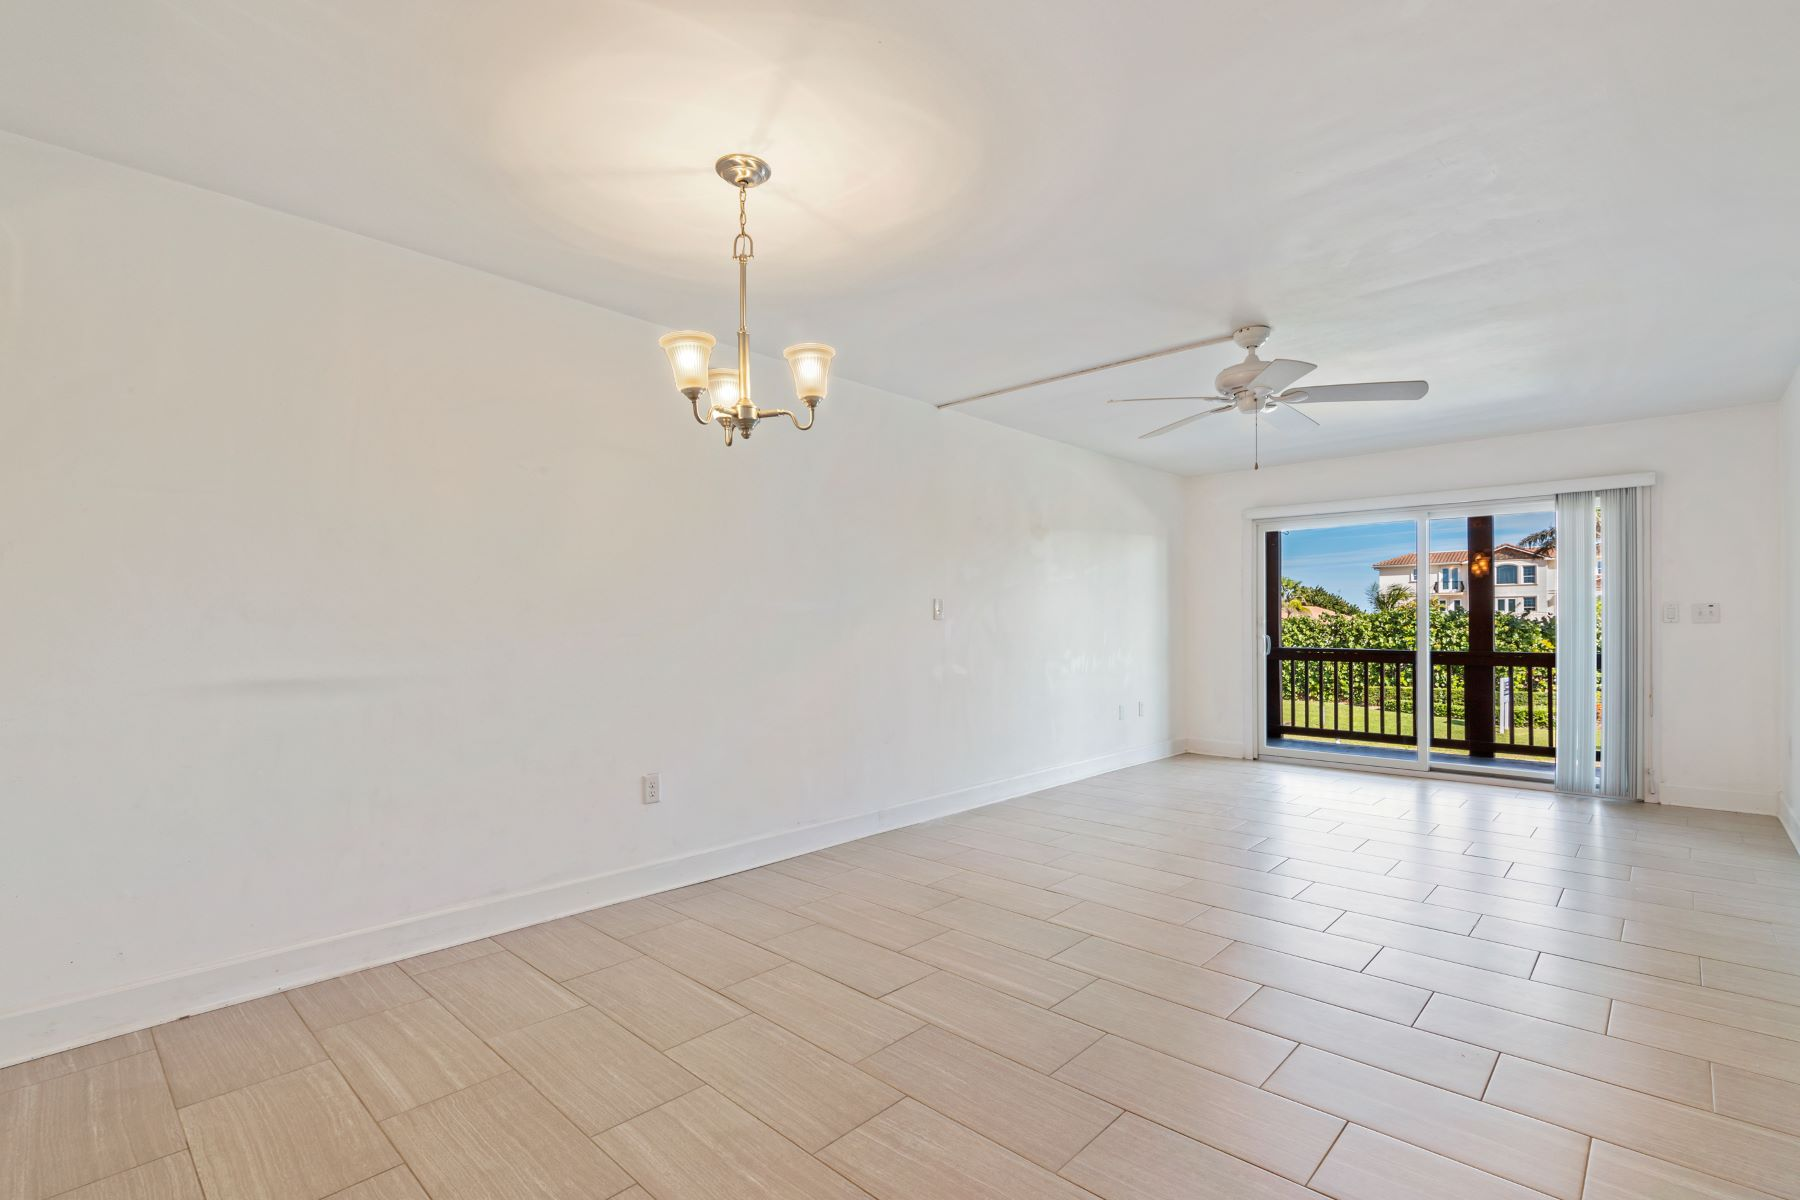 Additional photo for property listing at Great Condo located in Small, Quaint Complex 1318 S Miramar Avenue 203 Indialantic, Florida 32903 United States